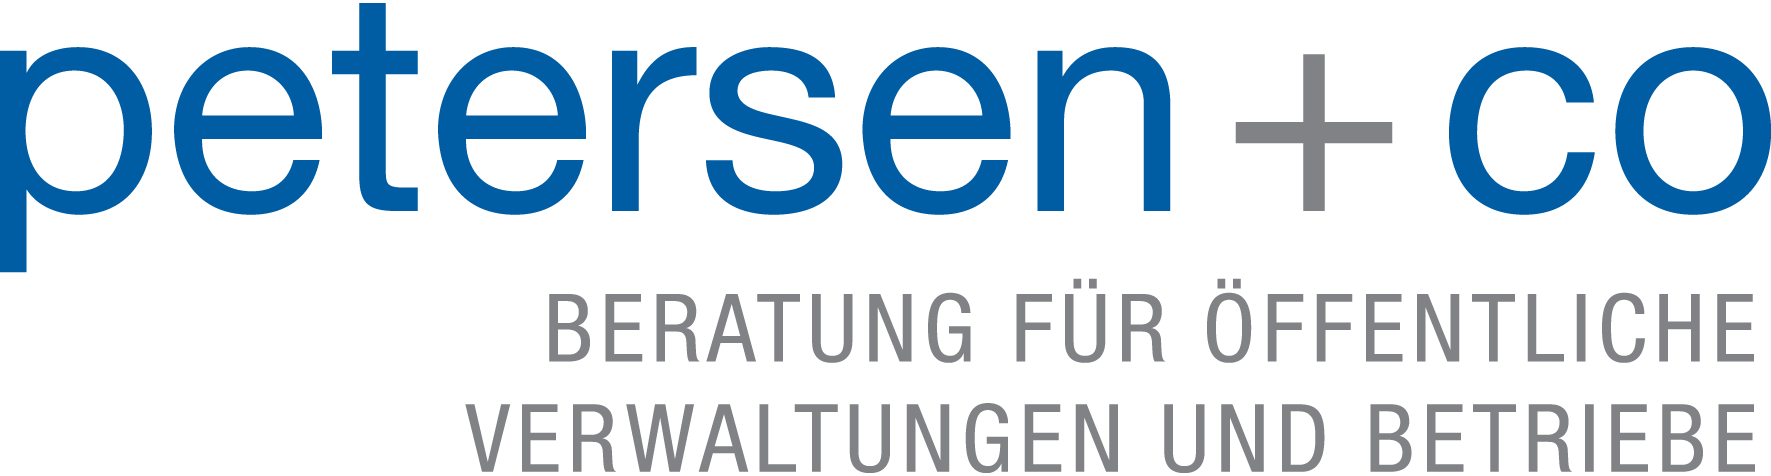 petersen + co GmbH